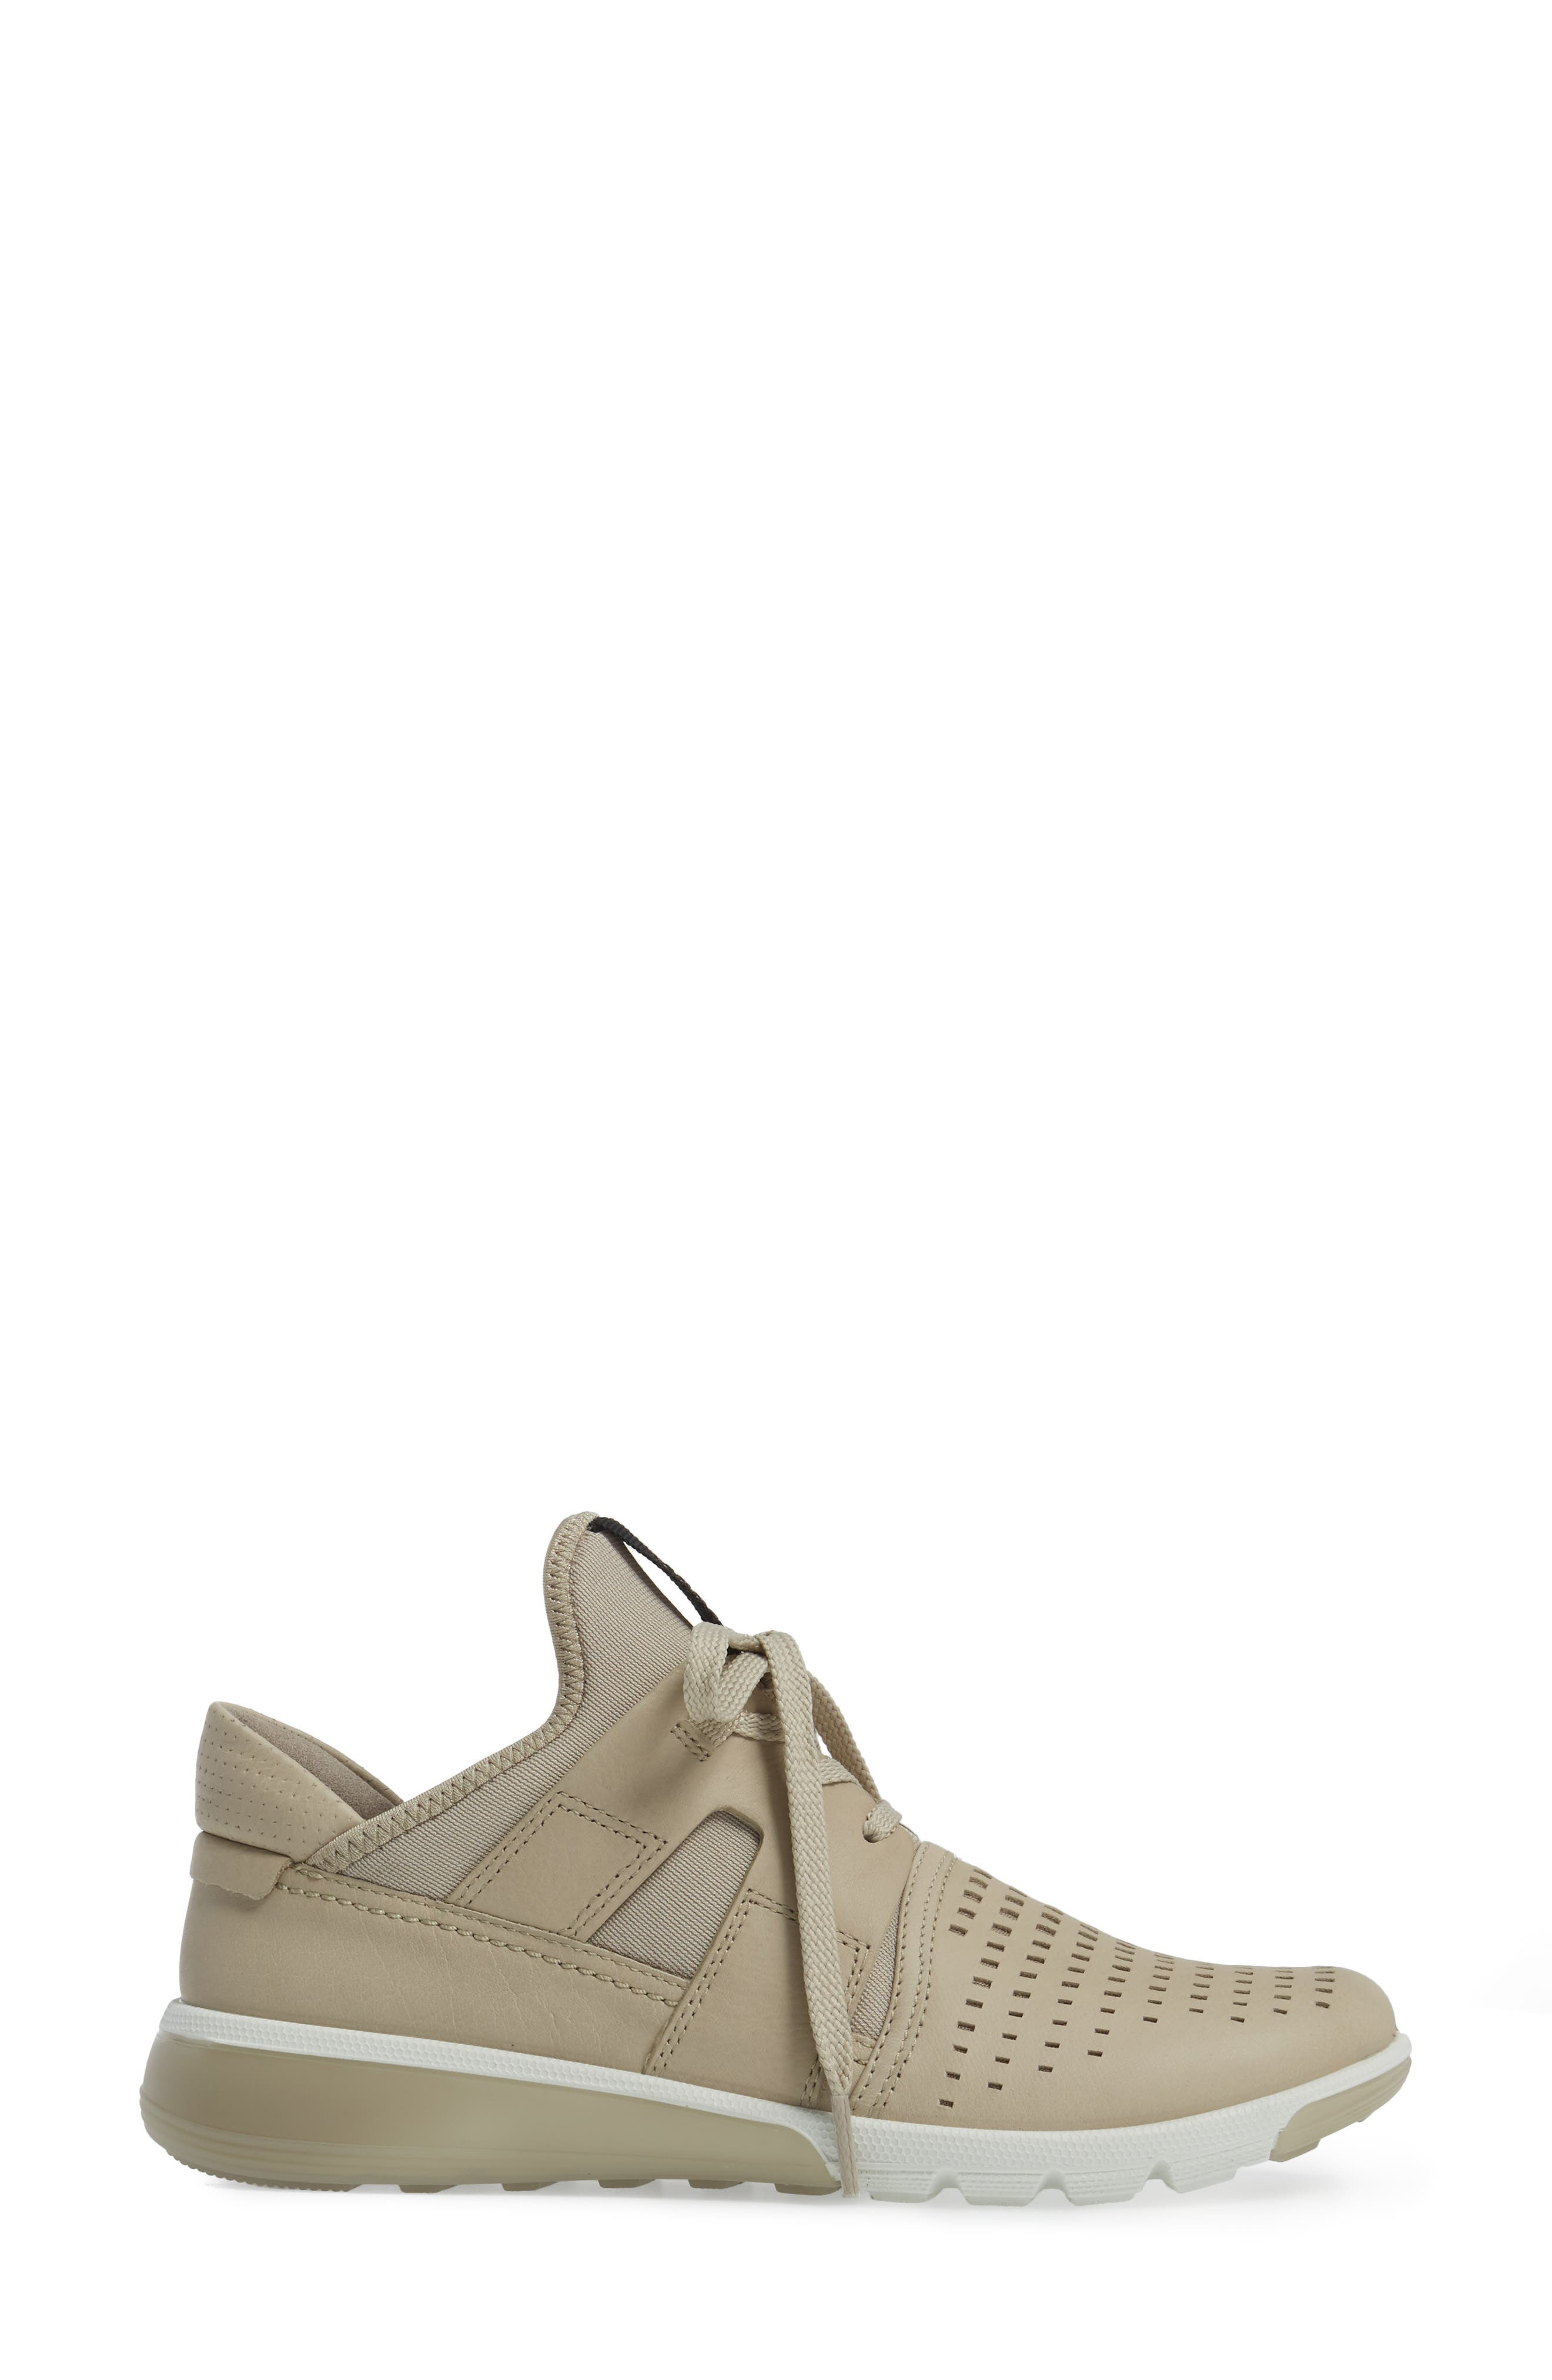 Intrinsic 2 Sneaker,                             Alternate thumbnail 3, color,                             Oyster Leather